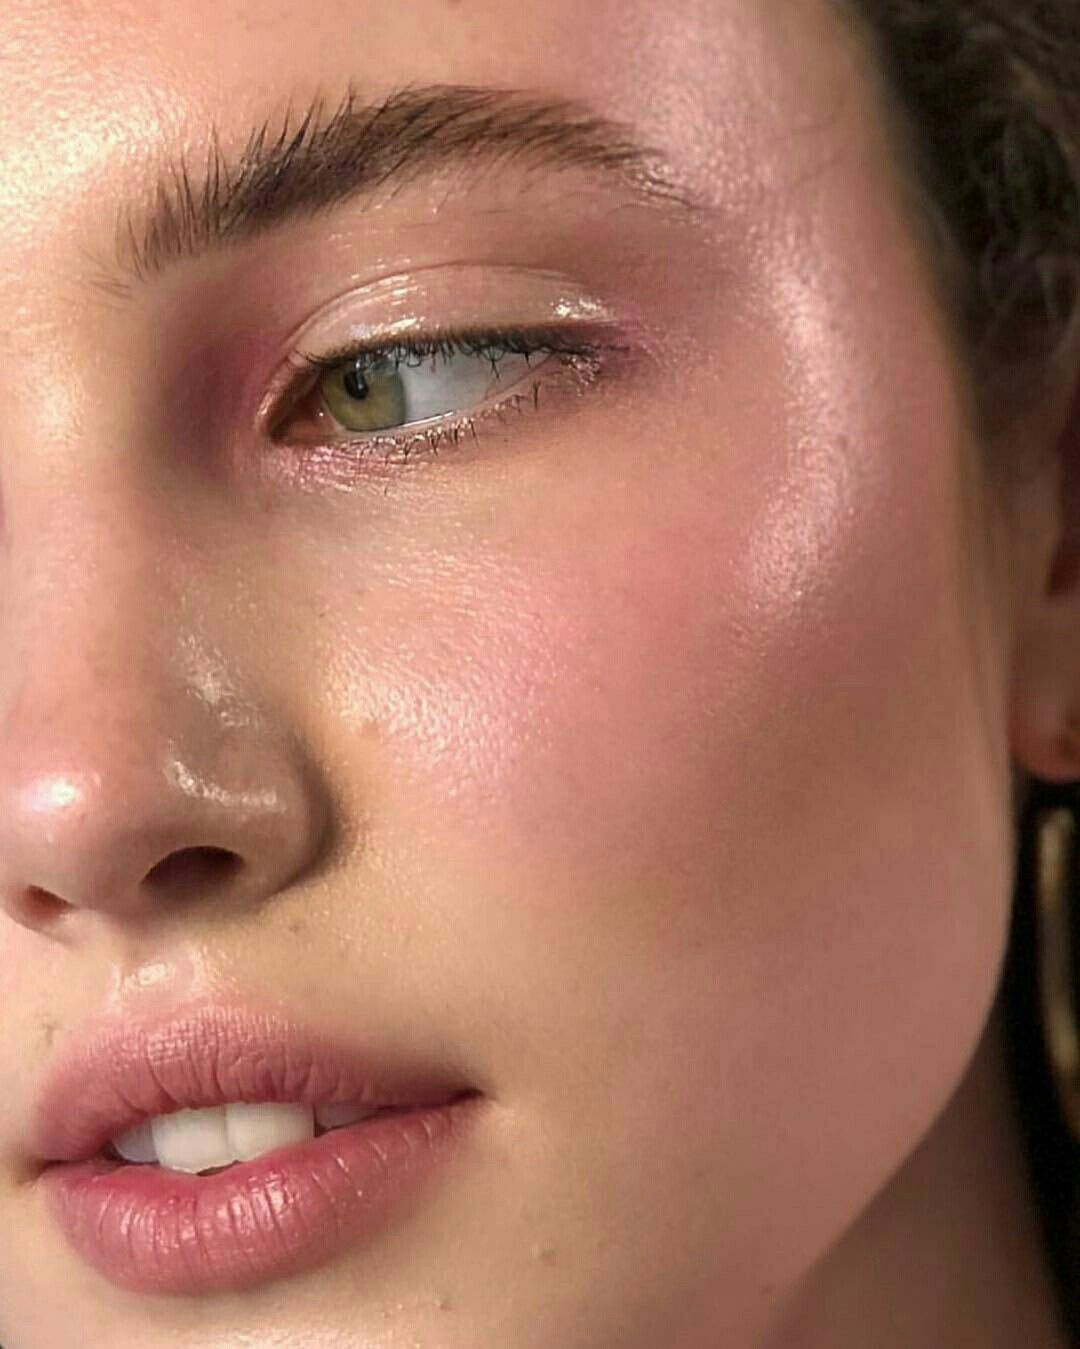 Pin by Maruthi on Visages féminins Glossy makeup